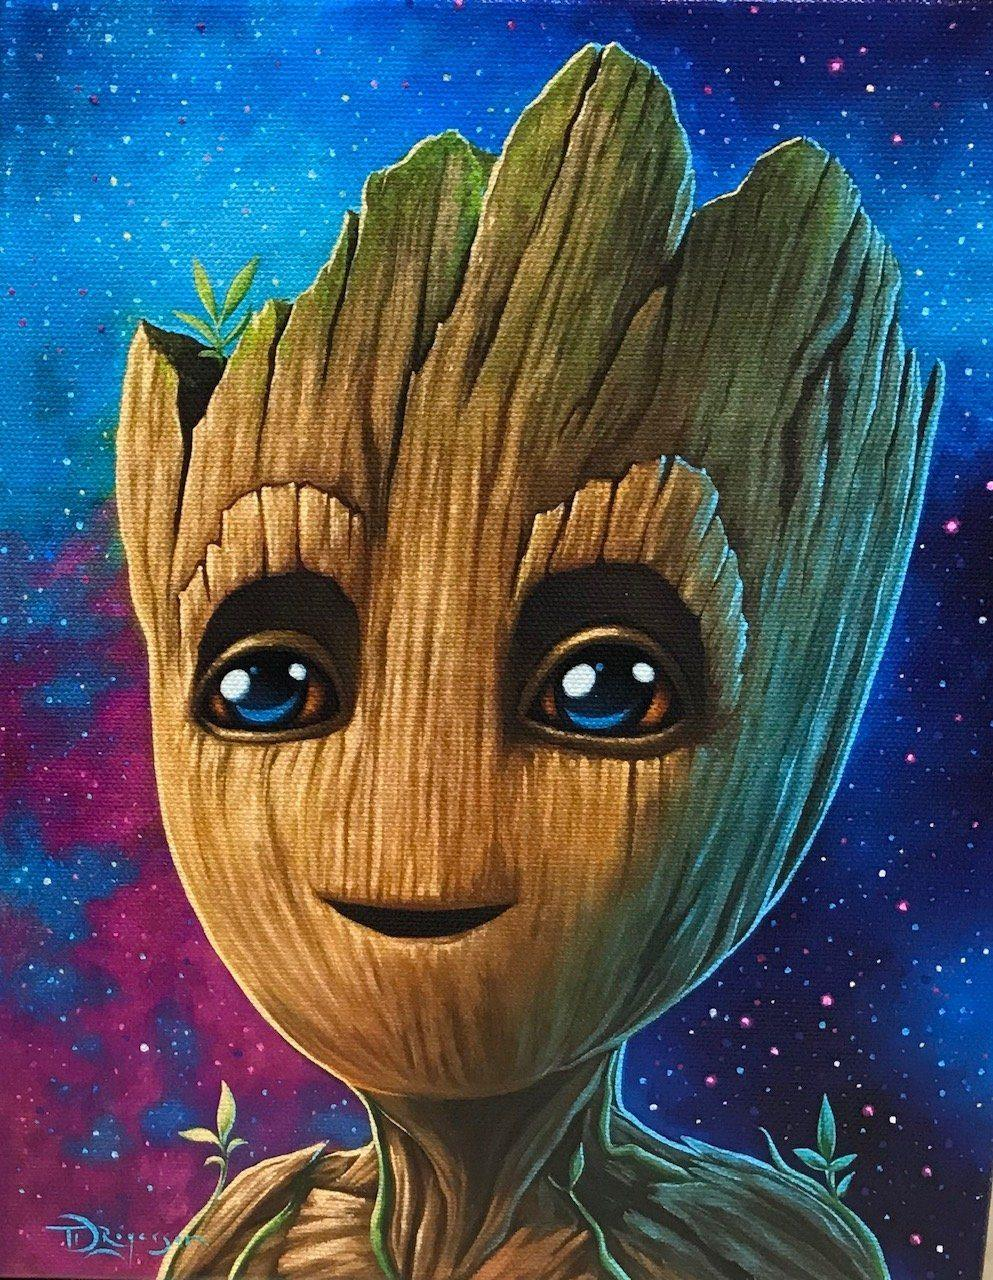 MARVEL SUPER MIGHTY MINI: BABY GROOT Super Mighty Mini MARVEL FINE ART